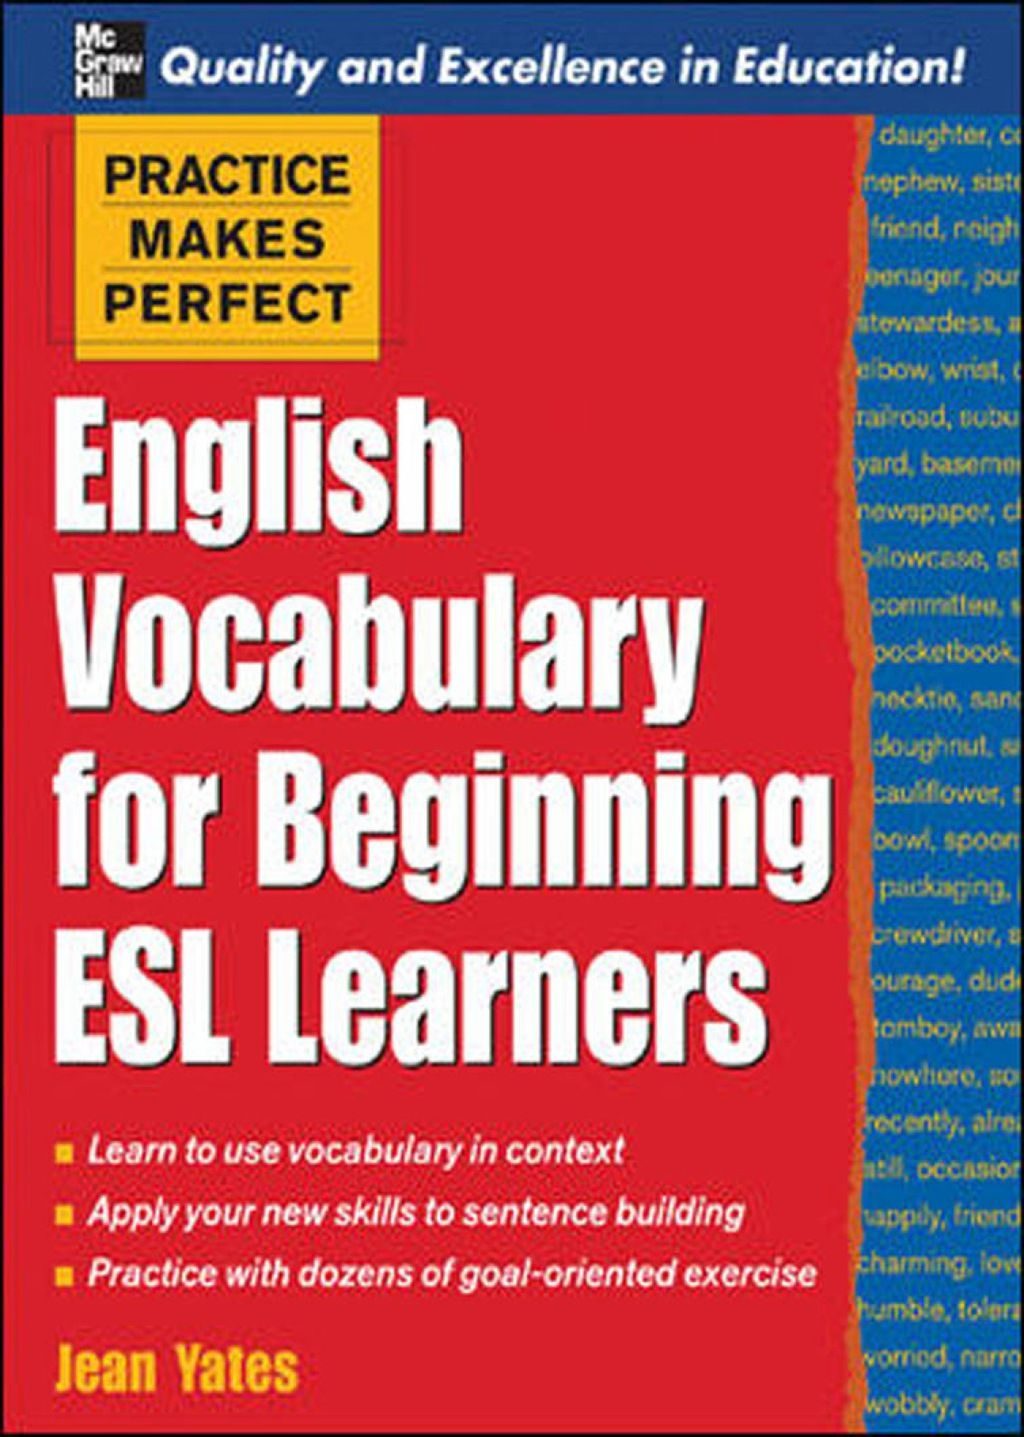 Practice Makes Perfect English Vocabulary For Beginning